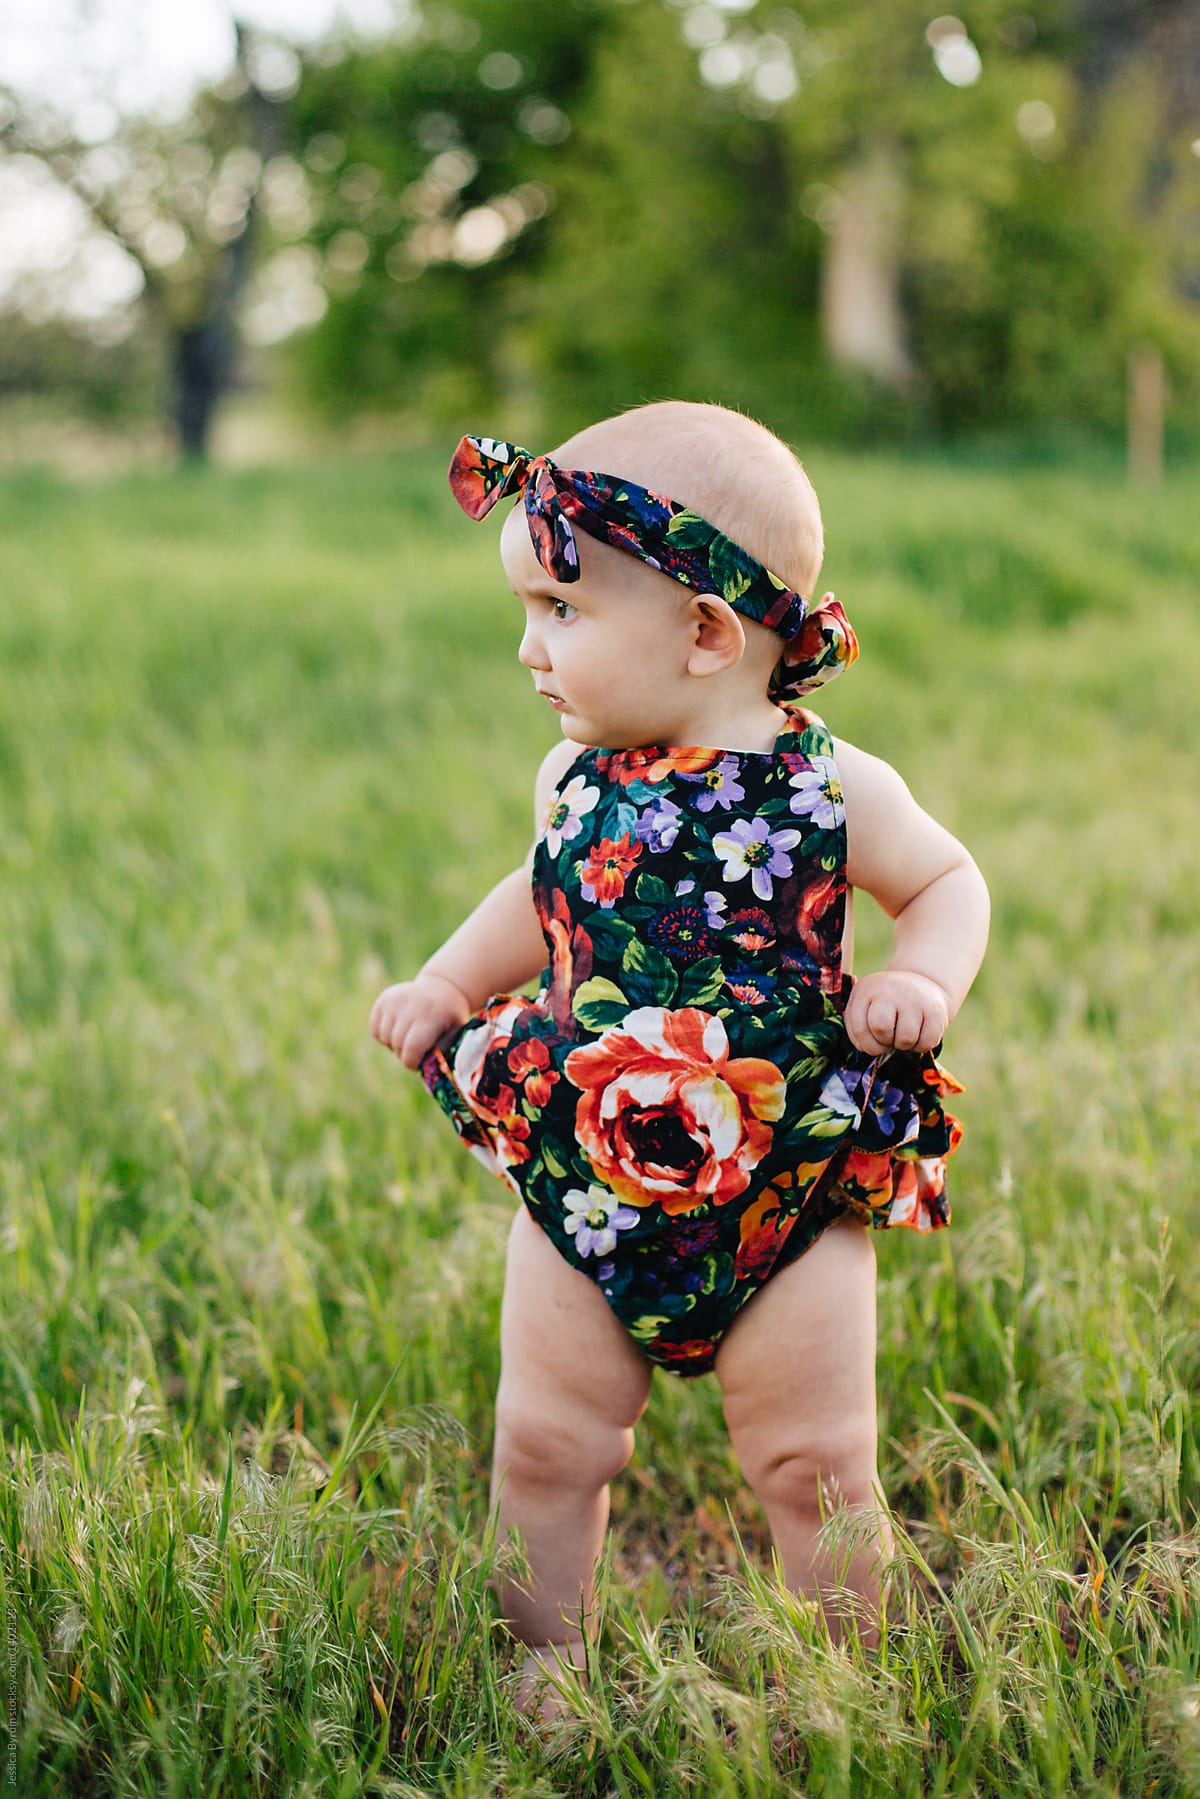 1fdfa8d094bb Cute one-year old girl in floral romper and headband outside in tall grass.